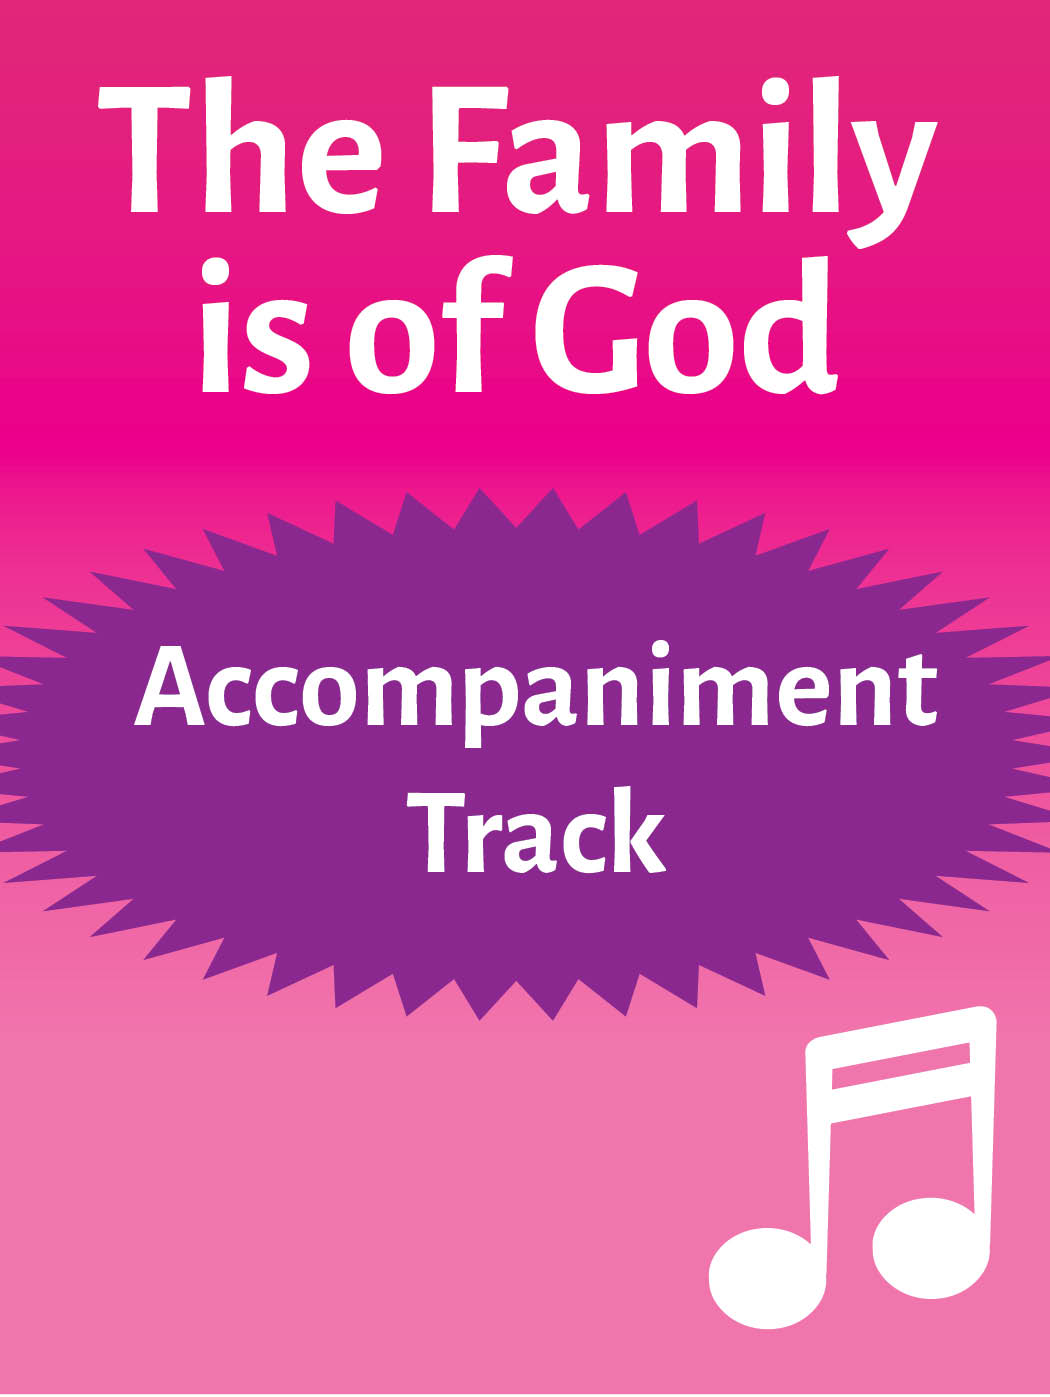 The Family is of God – accompaniment track (mp3 download)